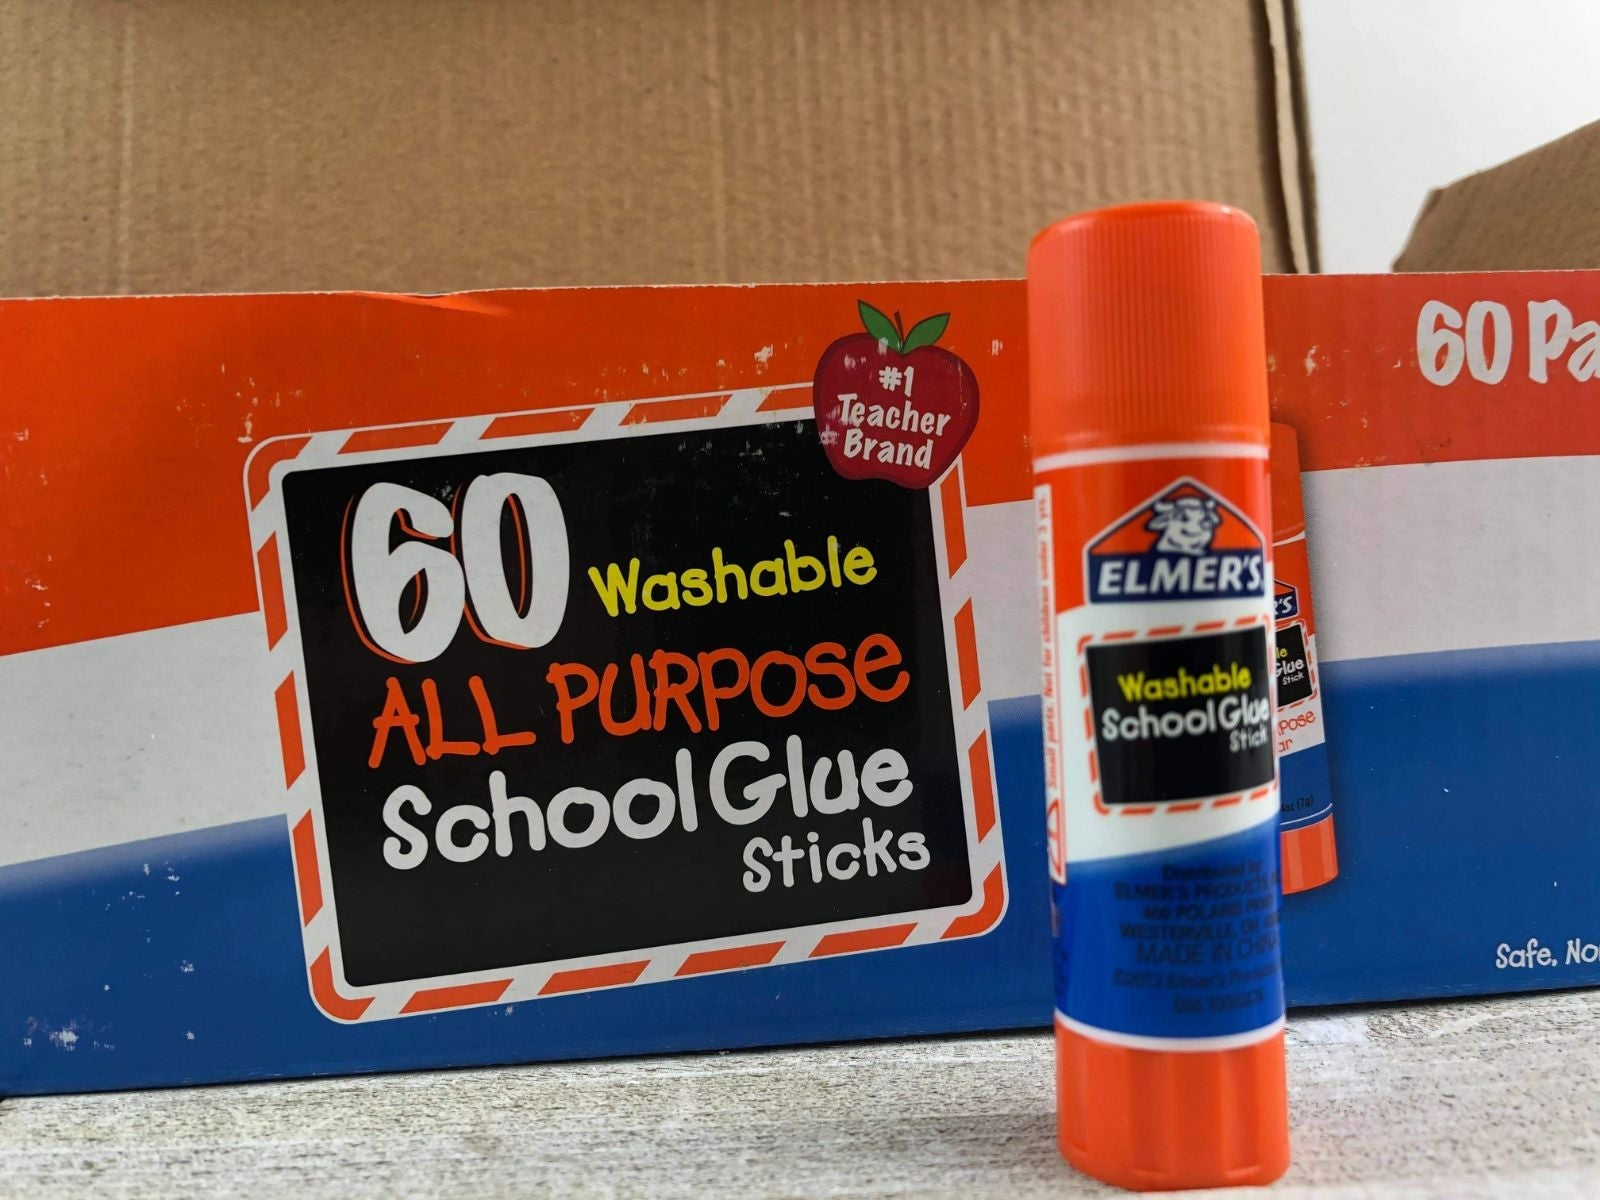 Elmer's glue 60 count all purpose washab